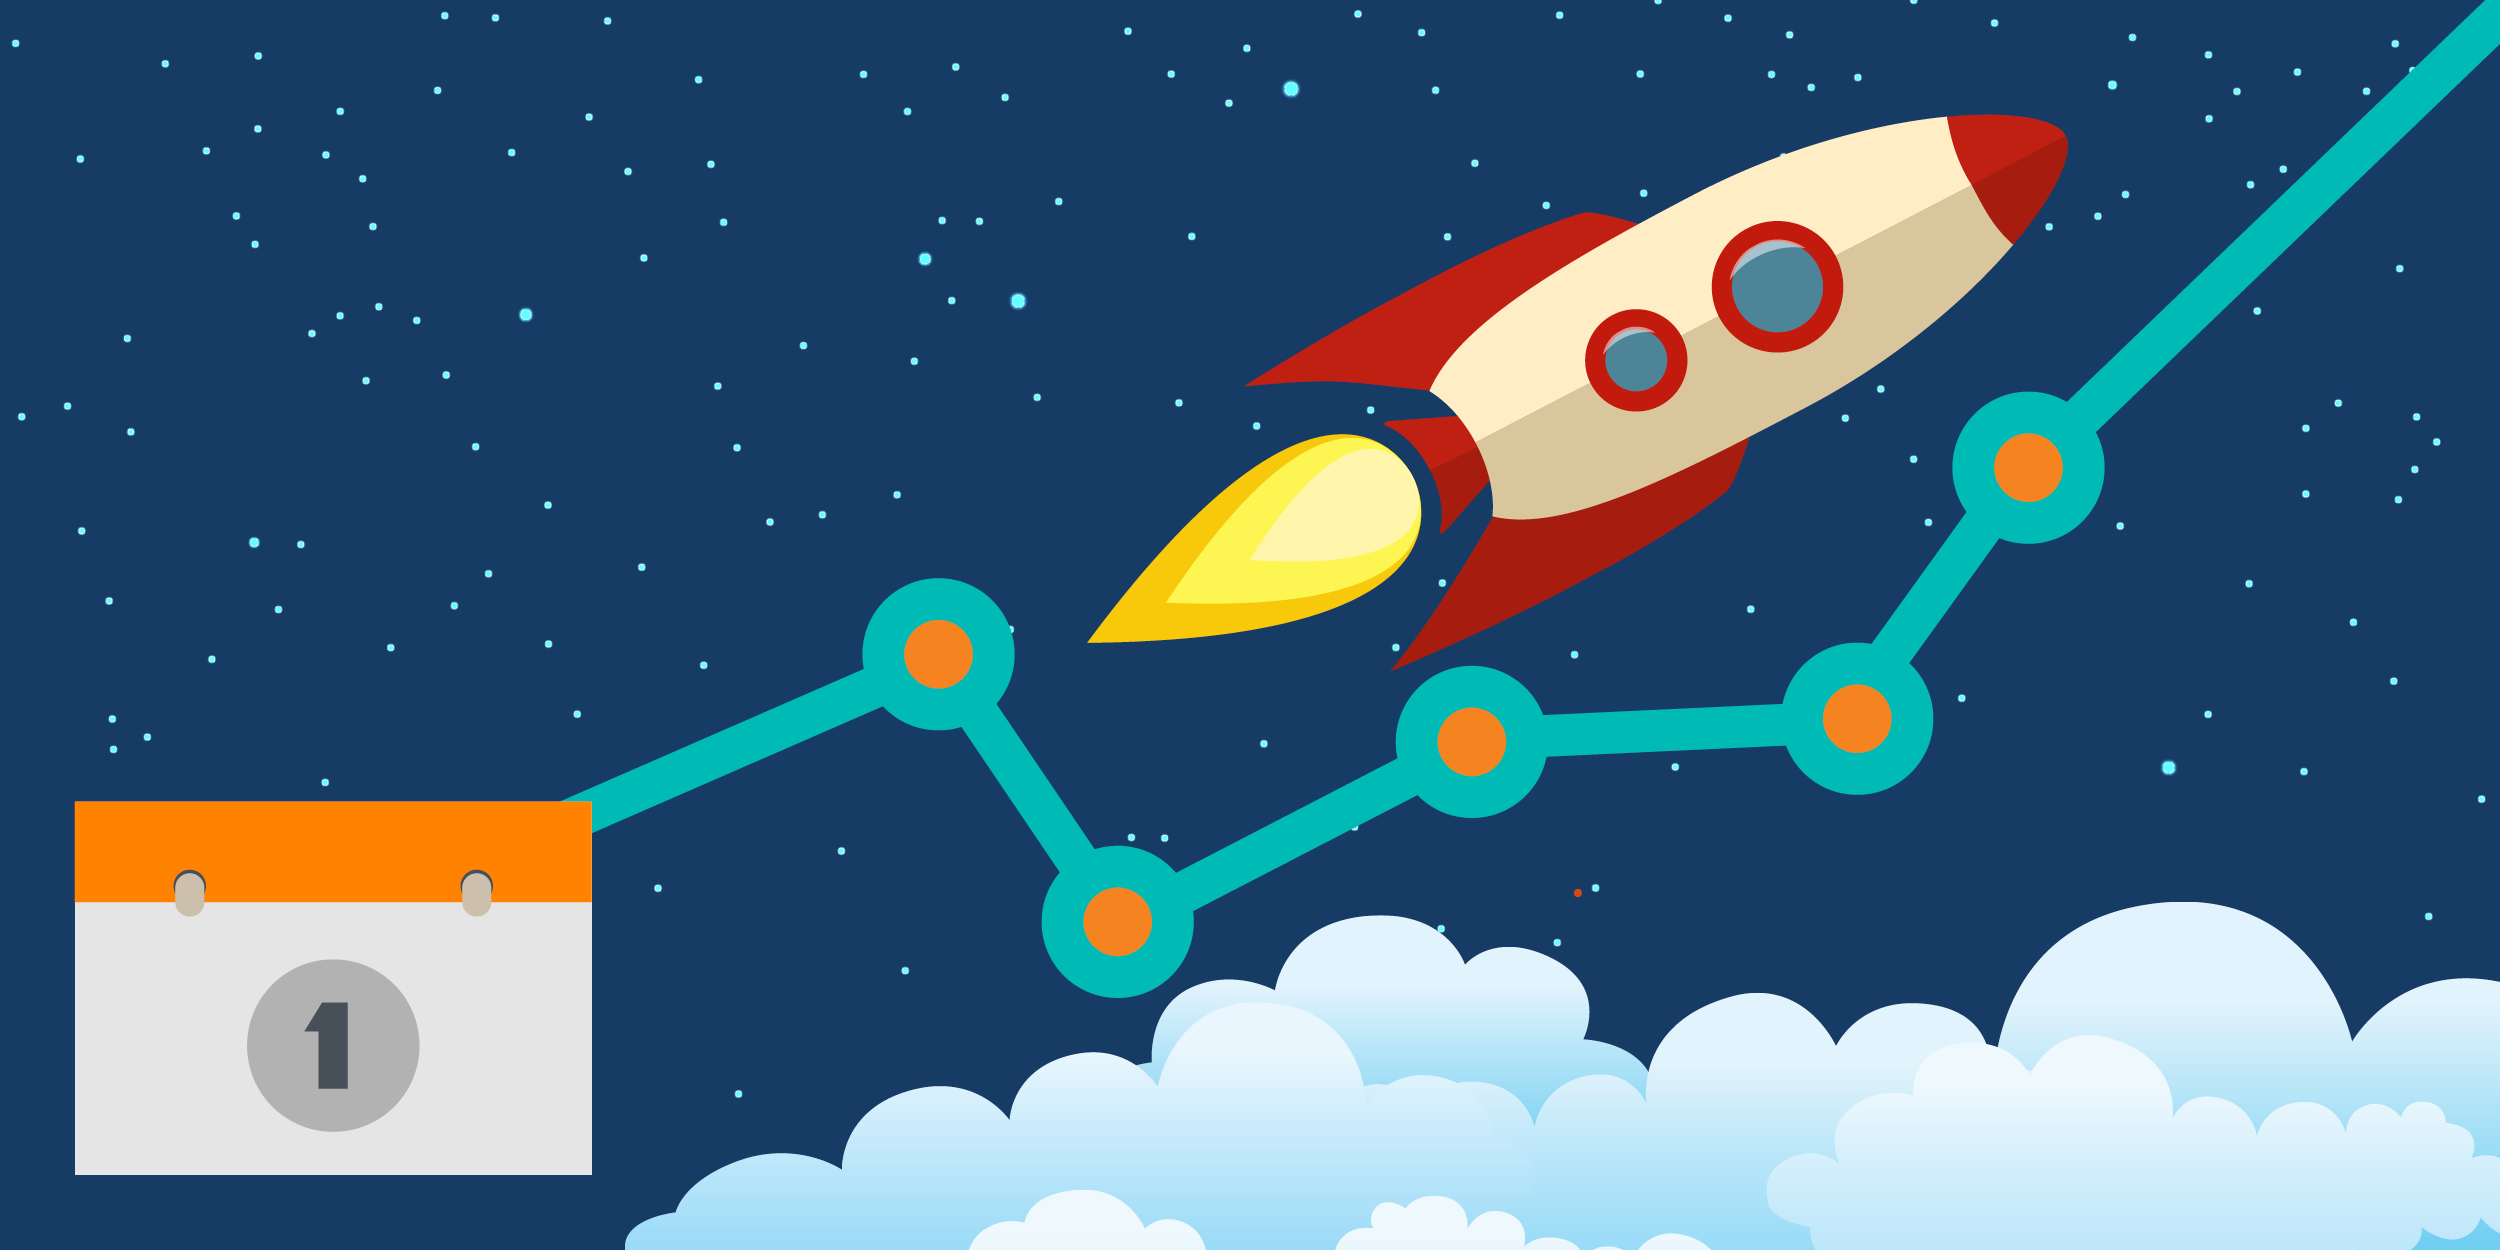 illustration of a rocket ship blasting off and a calendar with the number one on it